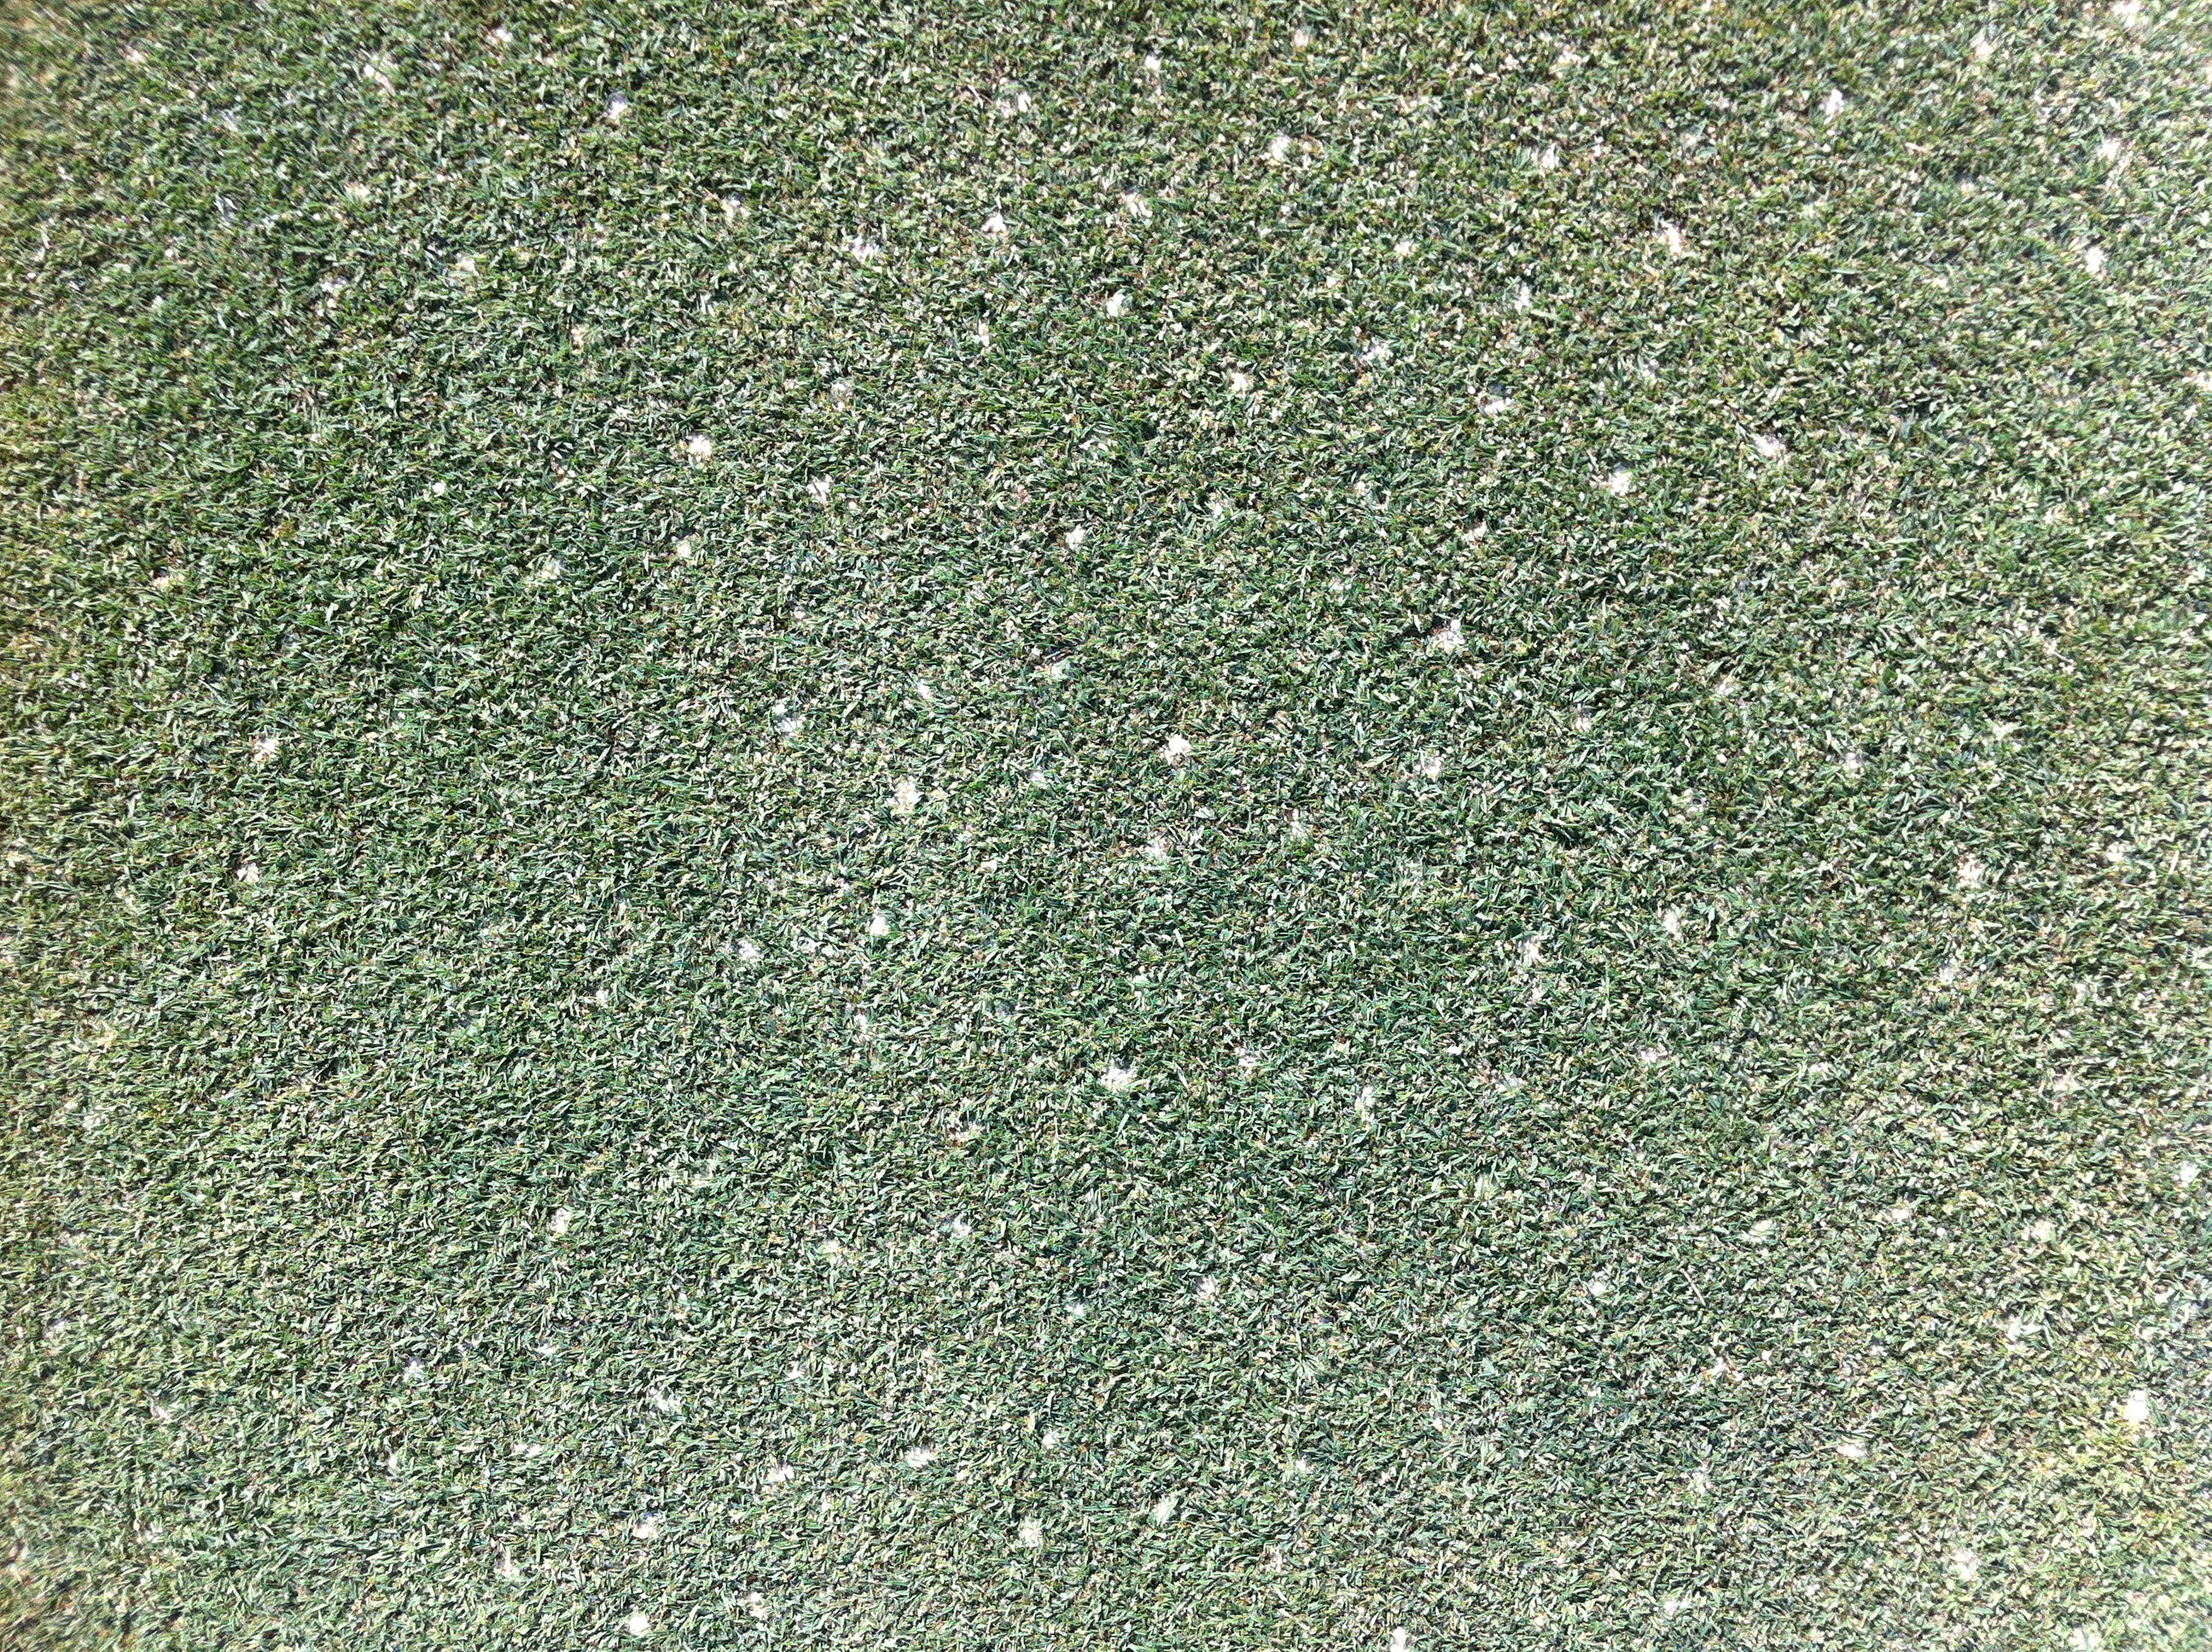 8 Days After Aerification